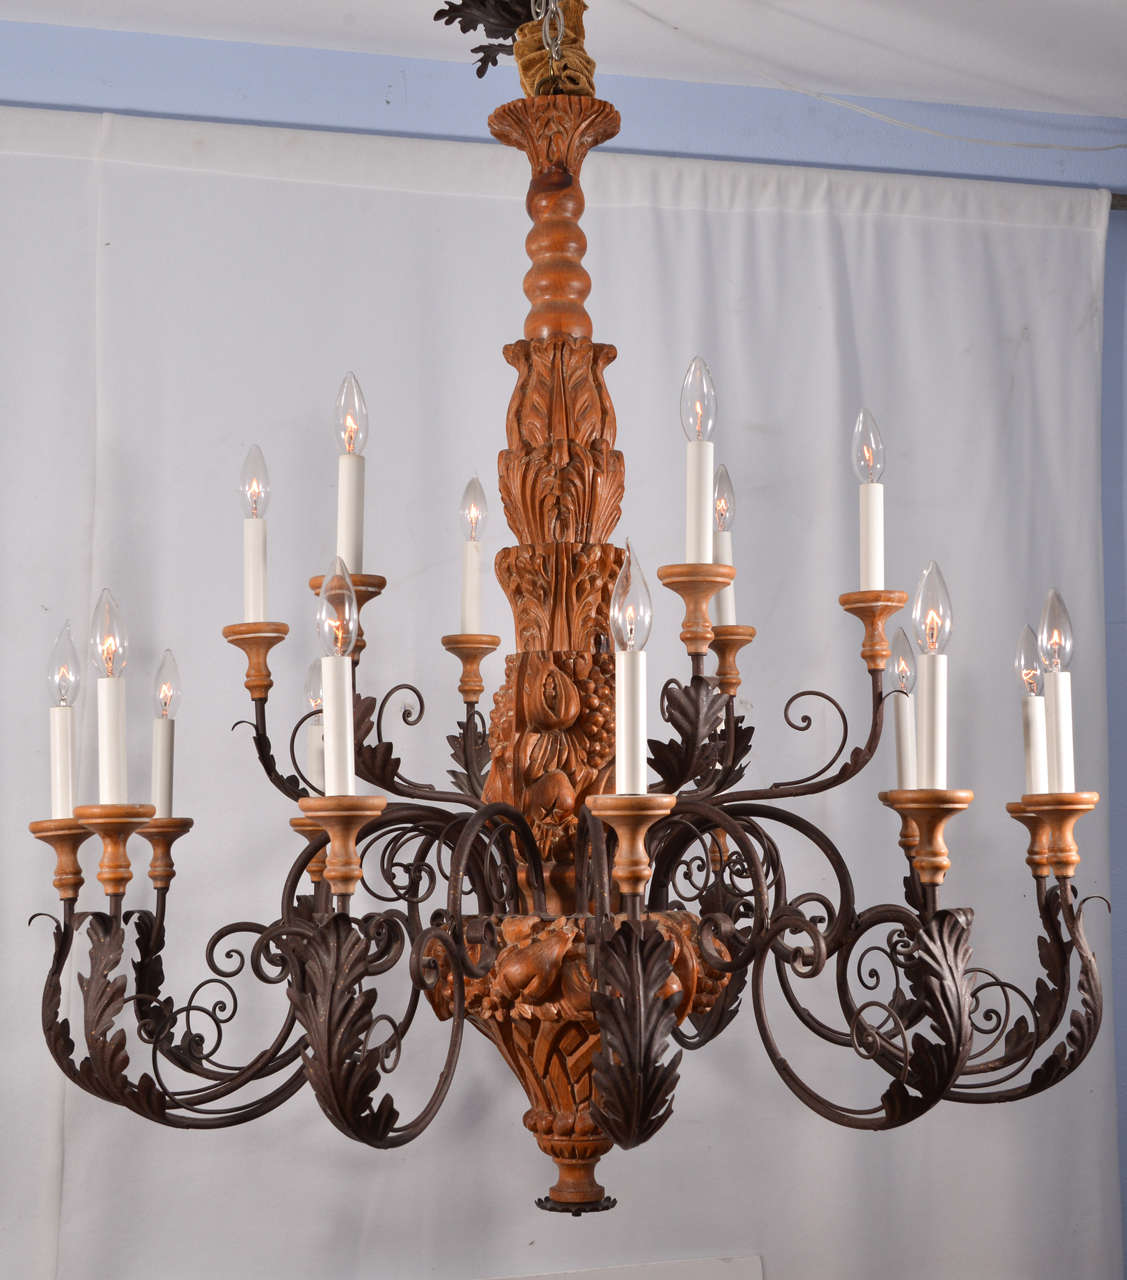 French Provincial Country Hand Carved Wood With Graceful Scrolling Arms Chandelier For